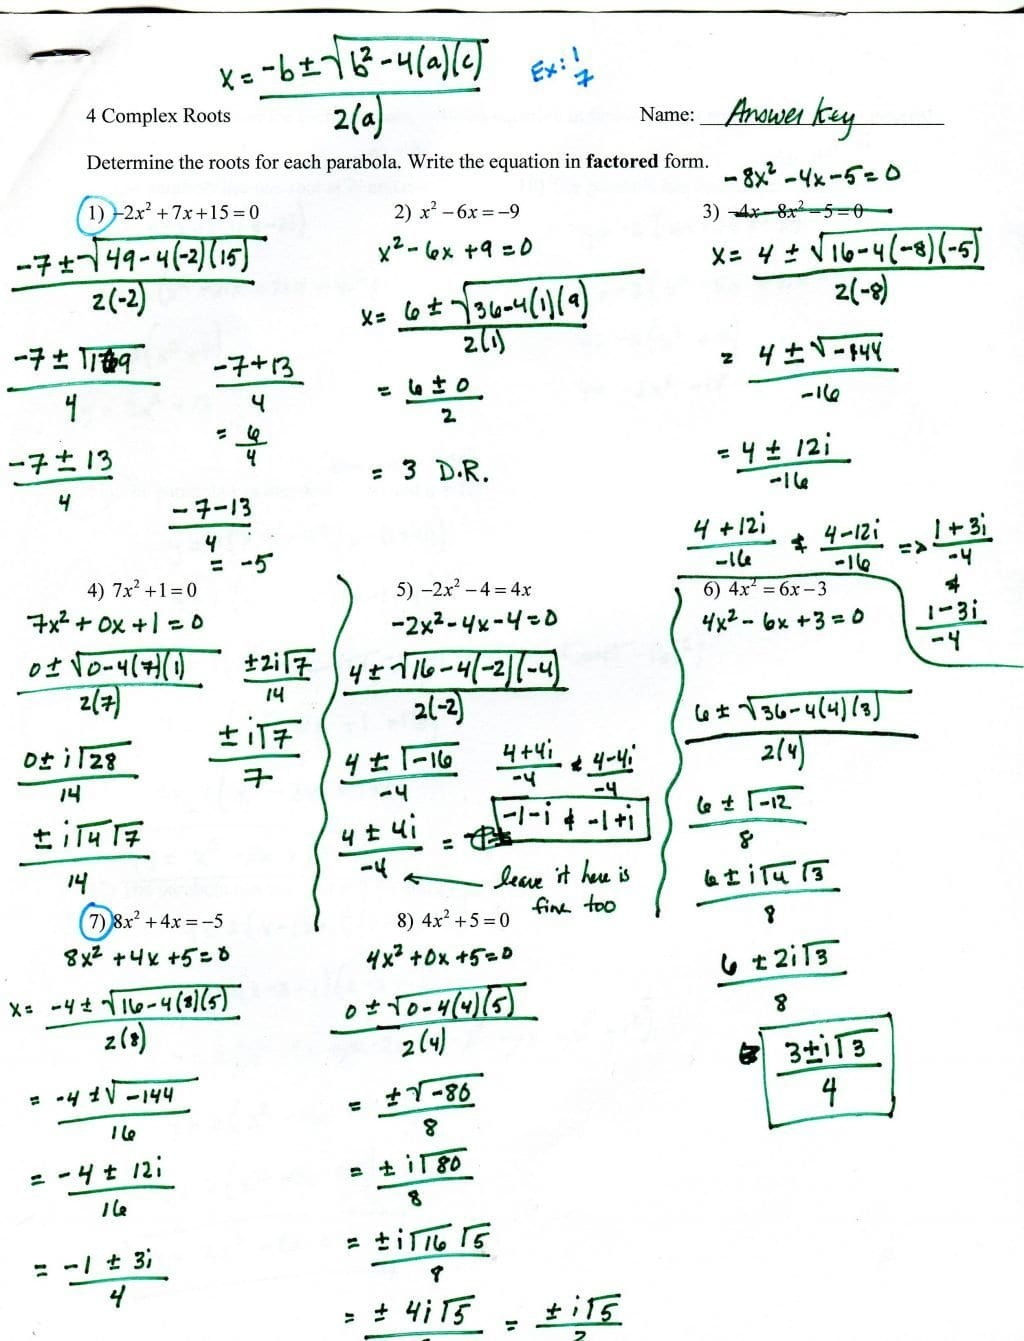 Factoring Trinomials Worksheet With Answer Key Integers Worksheet Or Worksheet Factoring Trinomials Answers Key